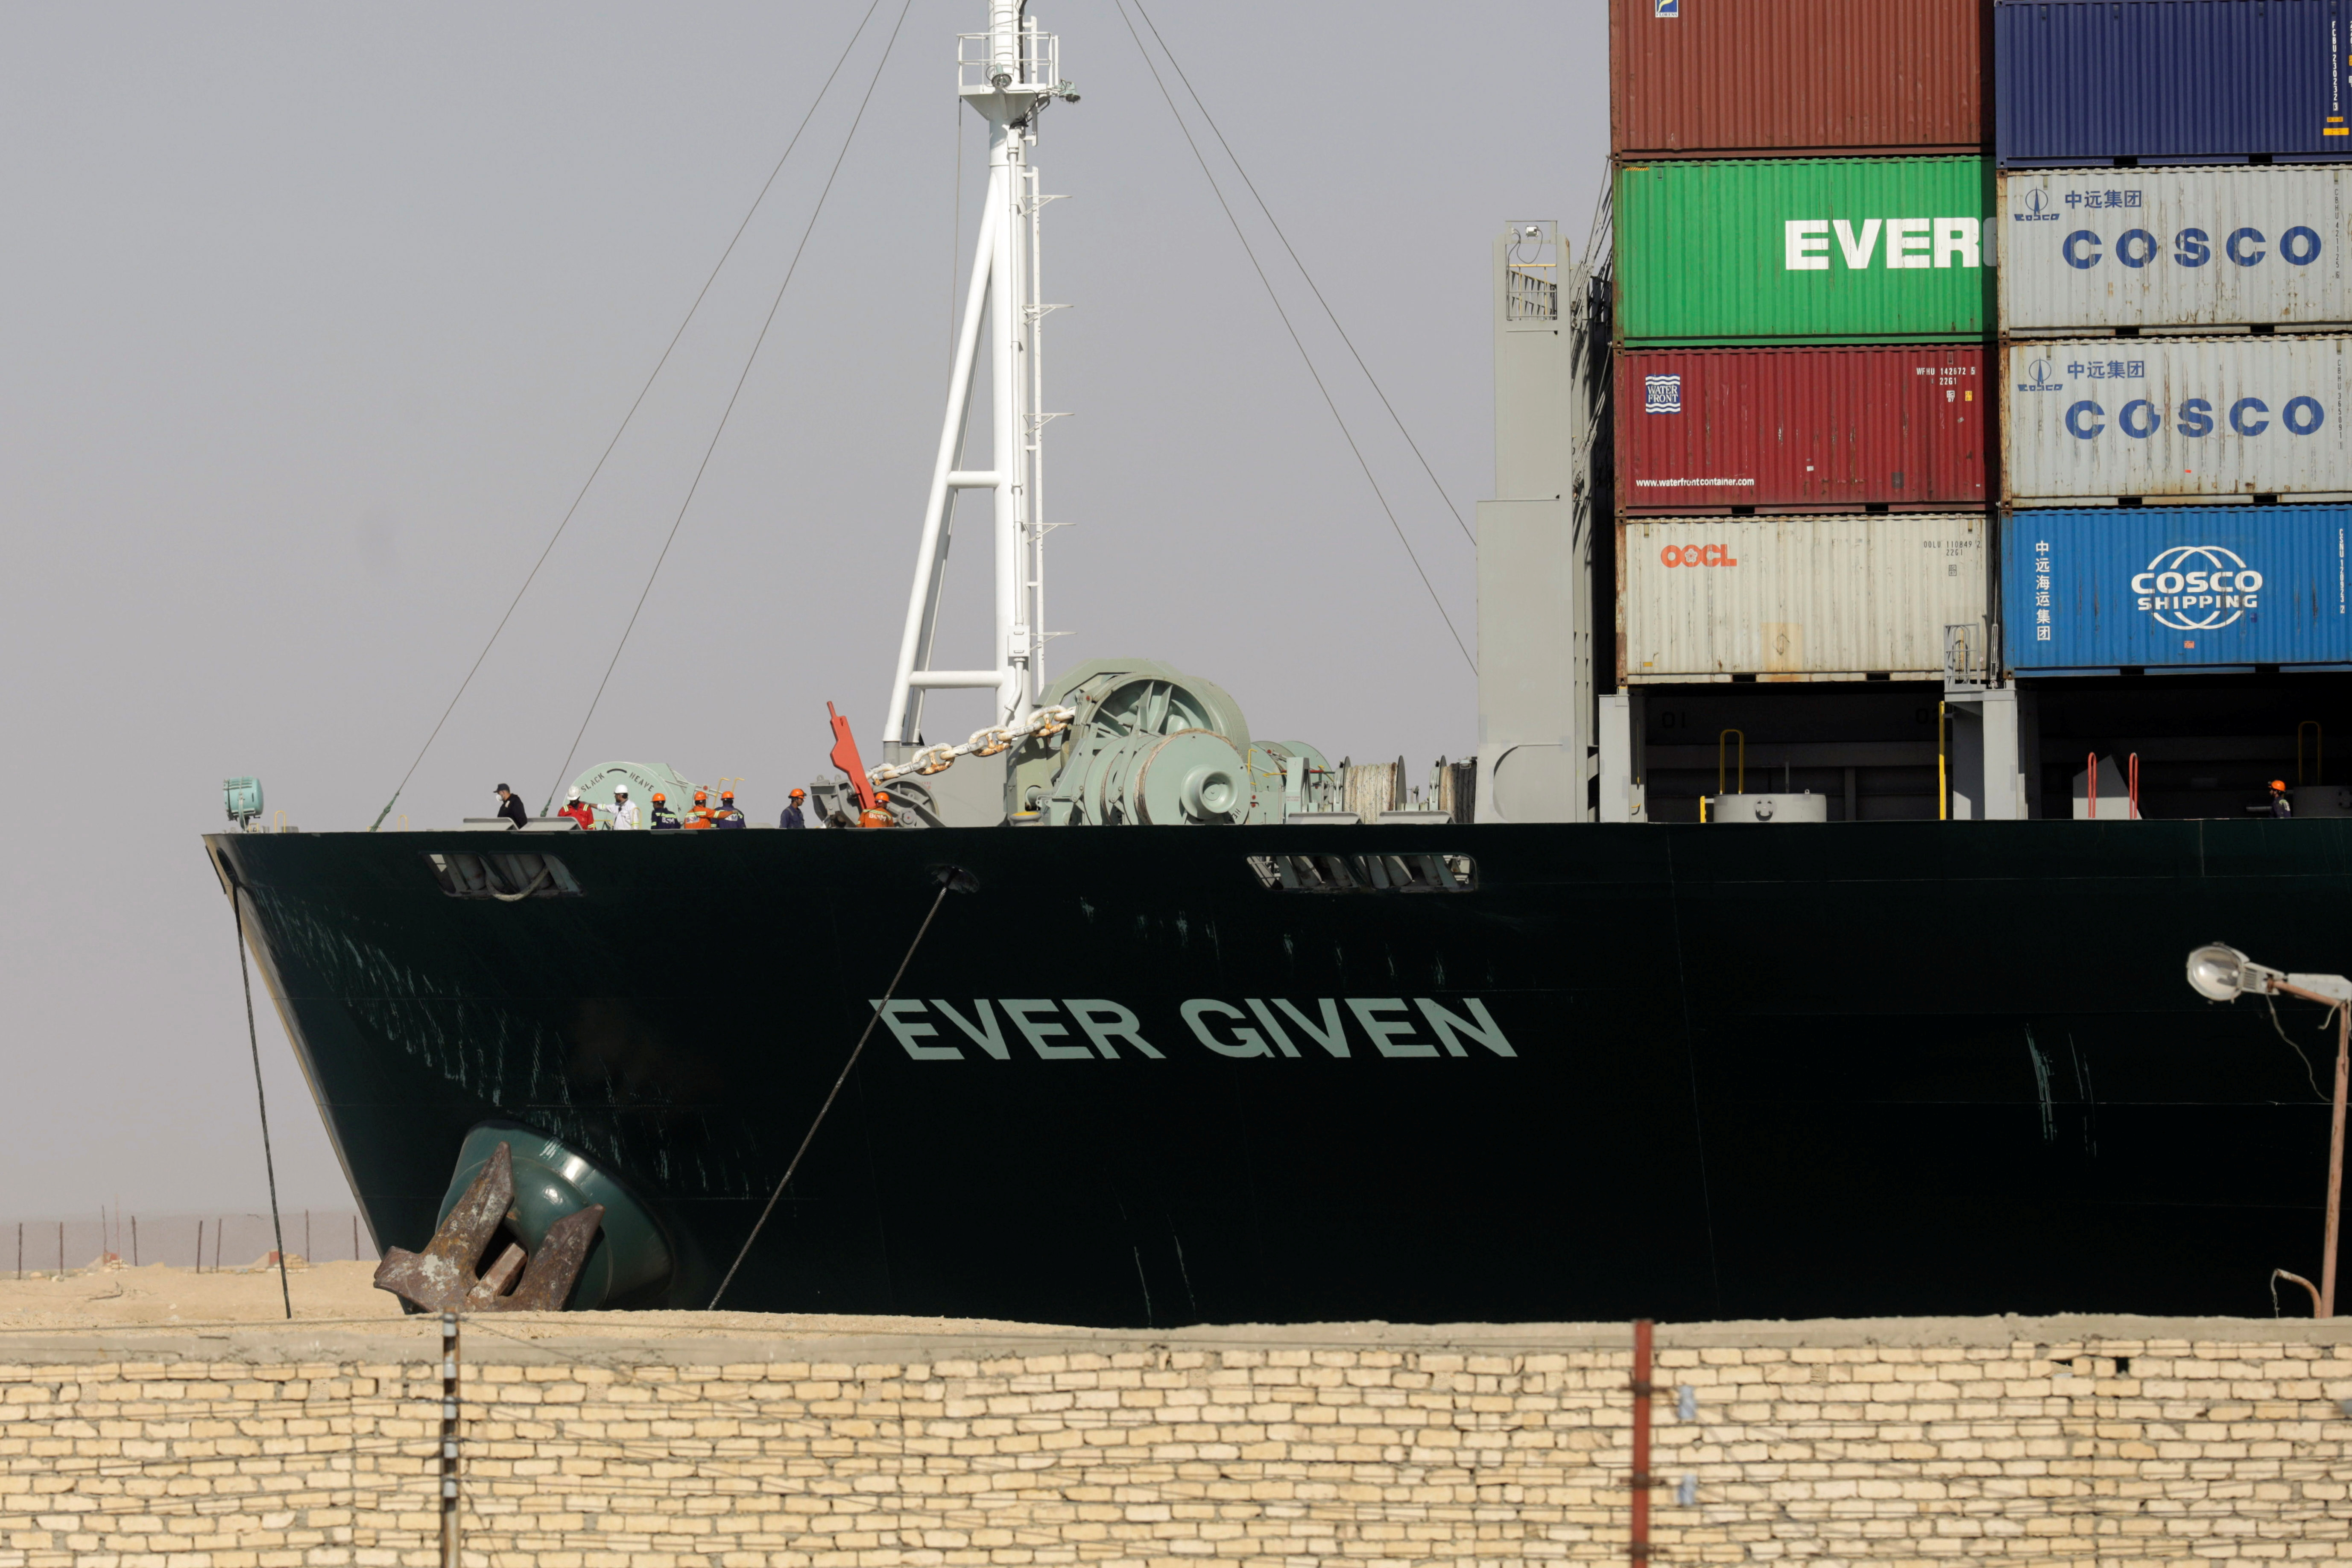 Container ship Ever Given